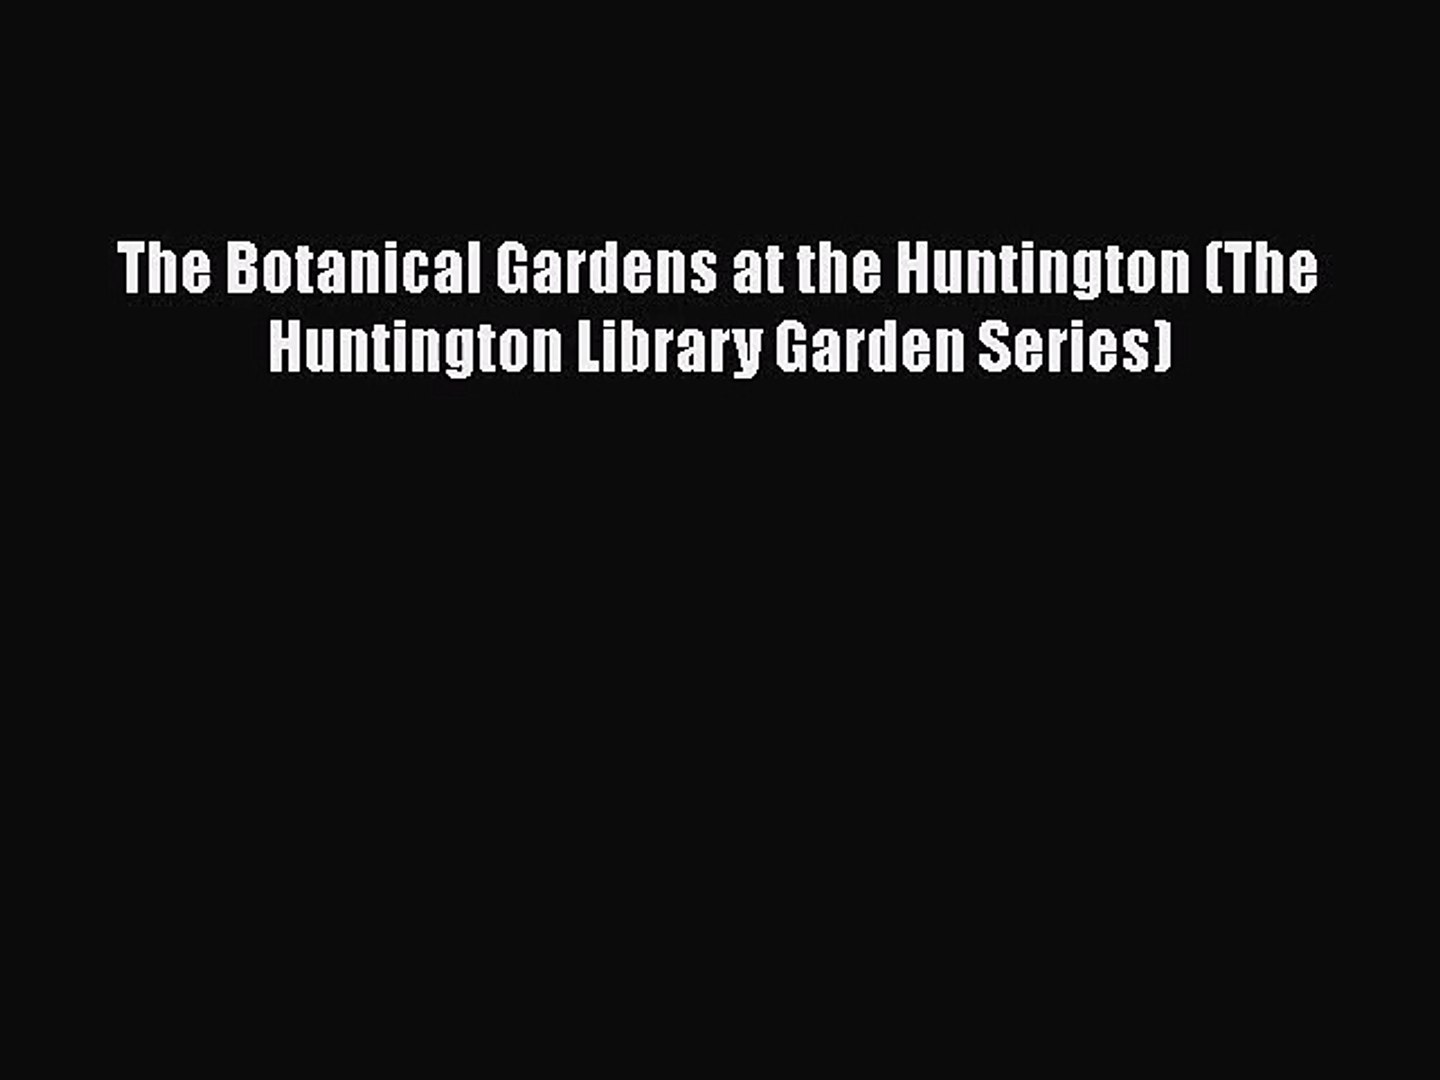 PDF Download The Botanical Gardens at the Huntington (The Huntington Library Garden Series)